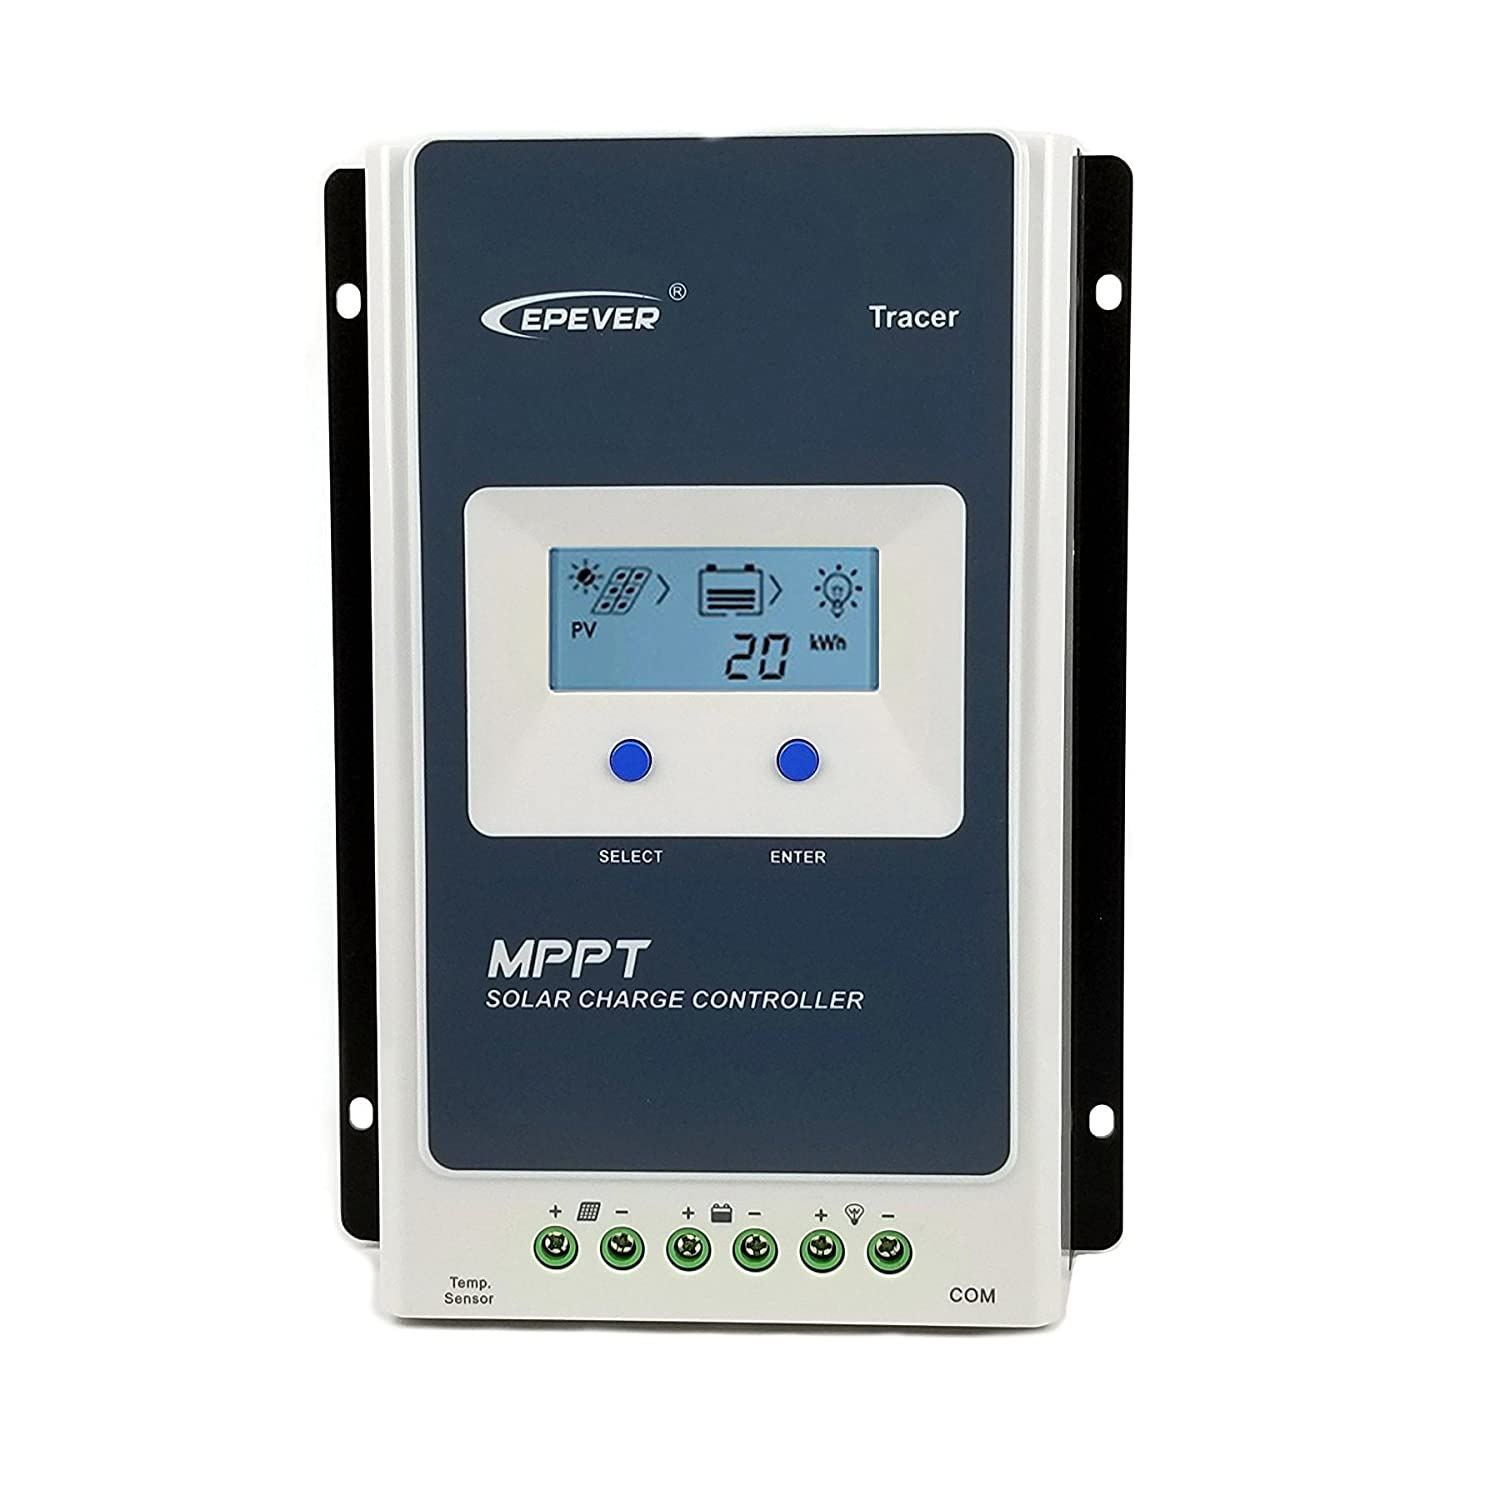 Qaurora MPPT Solar Charge Controller Tracer A Series 10A/20A/30A/40A with 12V/24V DC Automatically Identifying System Voltage (30A) EPEVER